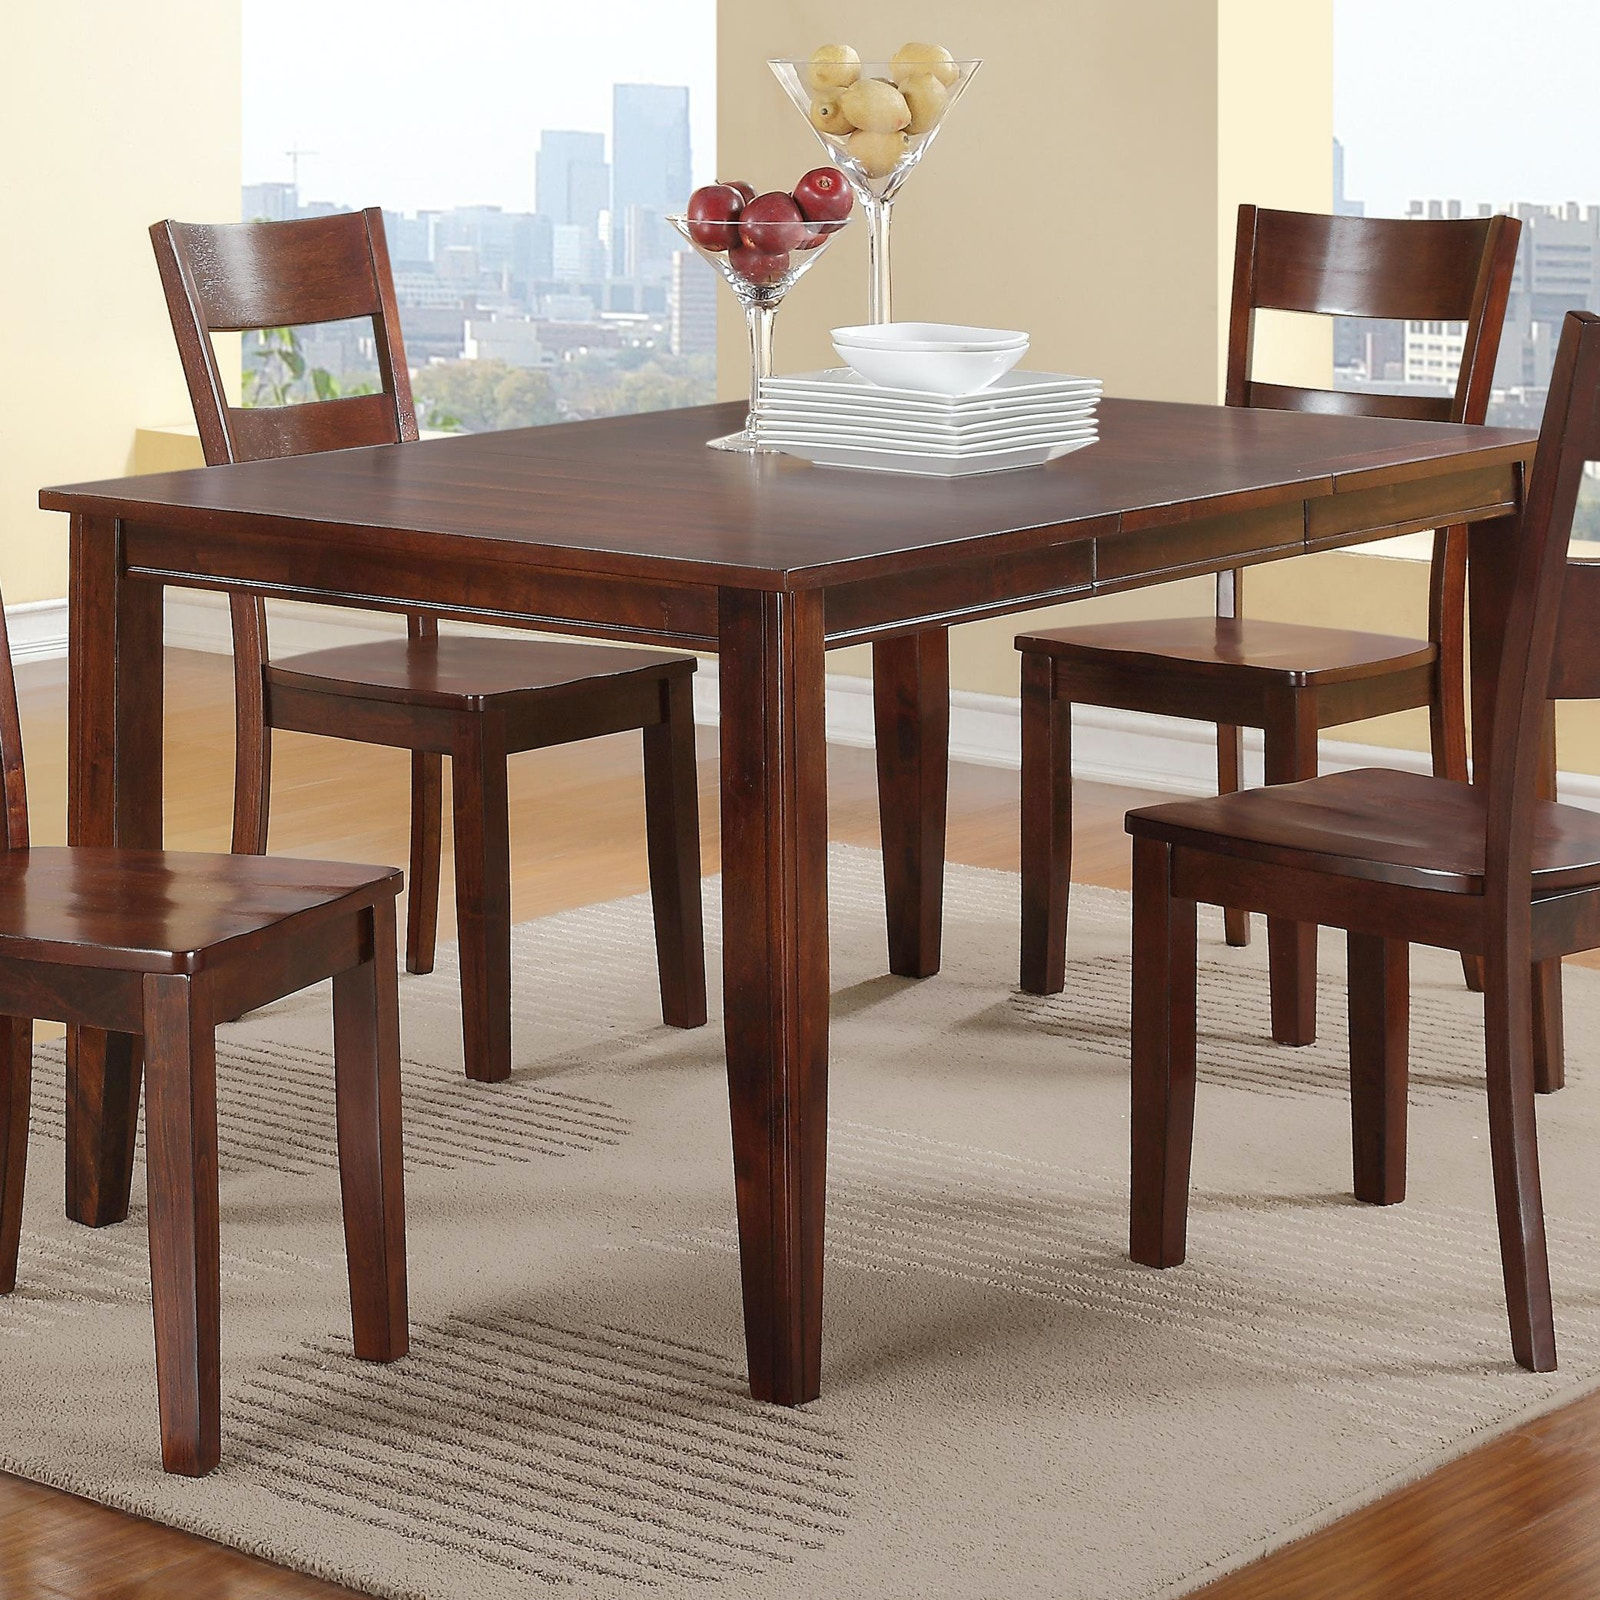 Holland House Dining Room Canton Dining Set 363049 - Furniture ...